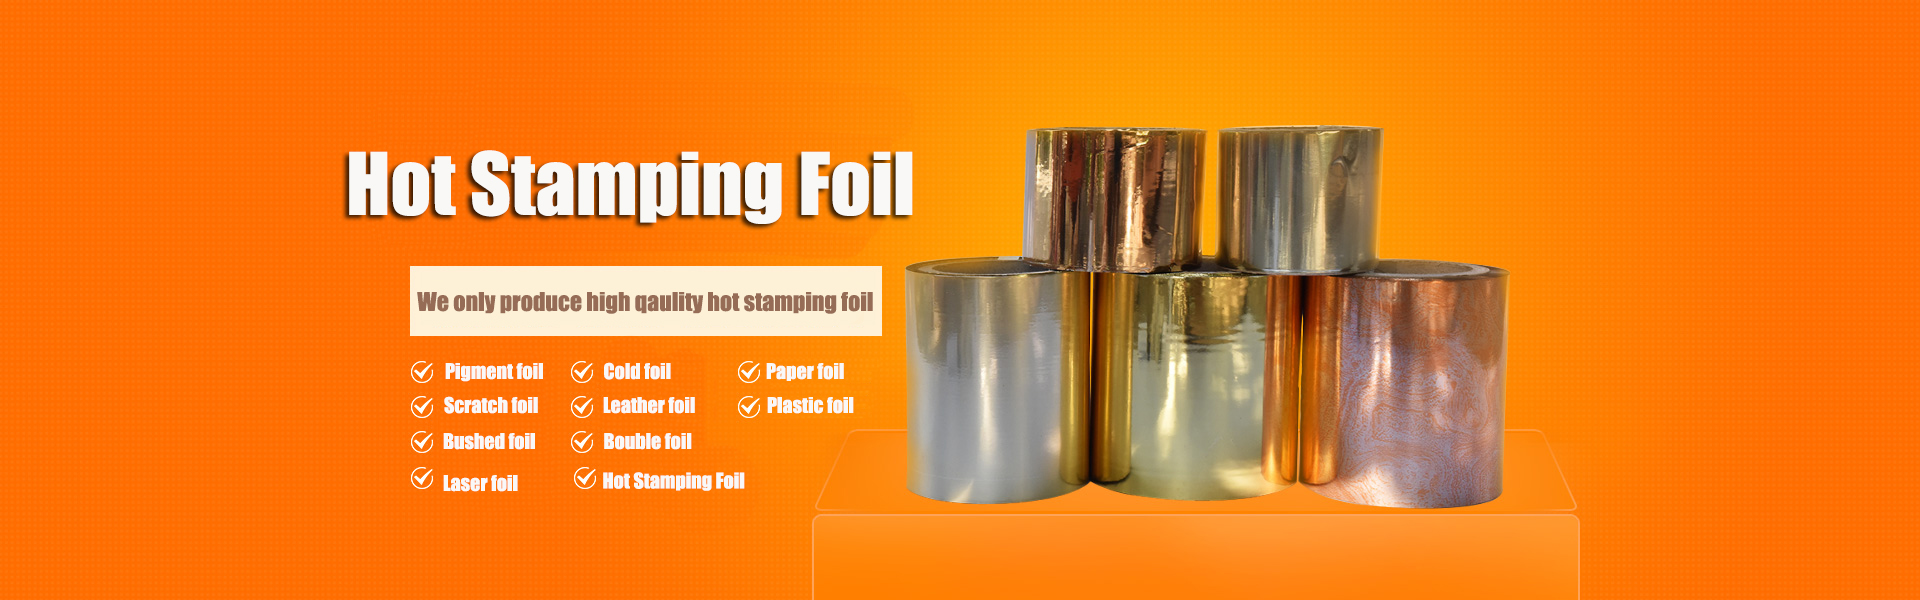 Hot Stamping Foil